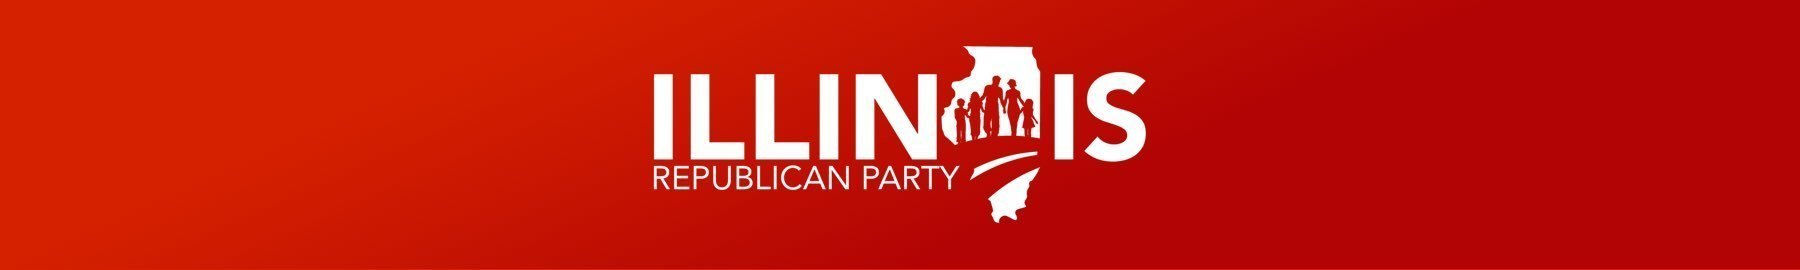 The Illinois Republican Party: 2019 Membership (website)